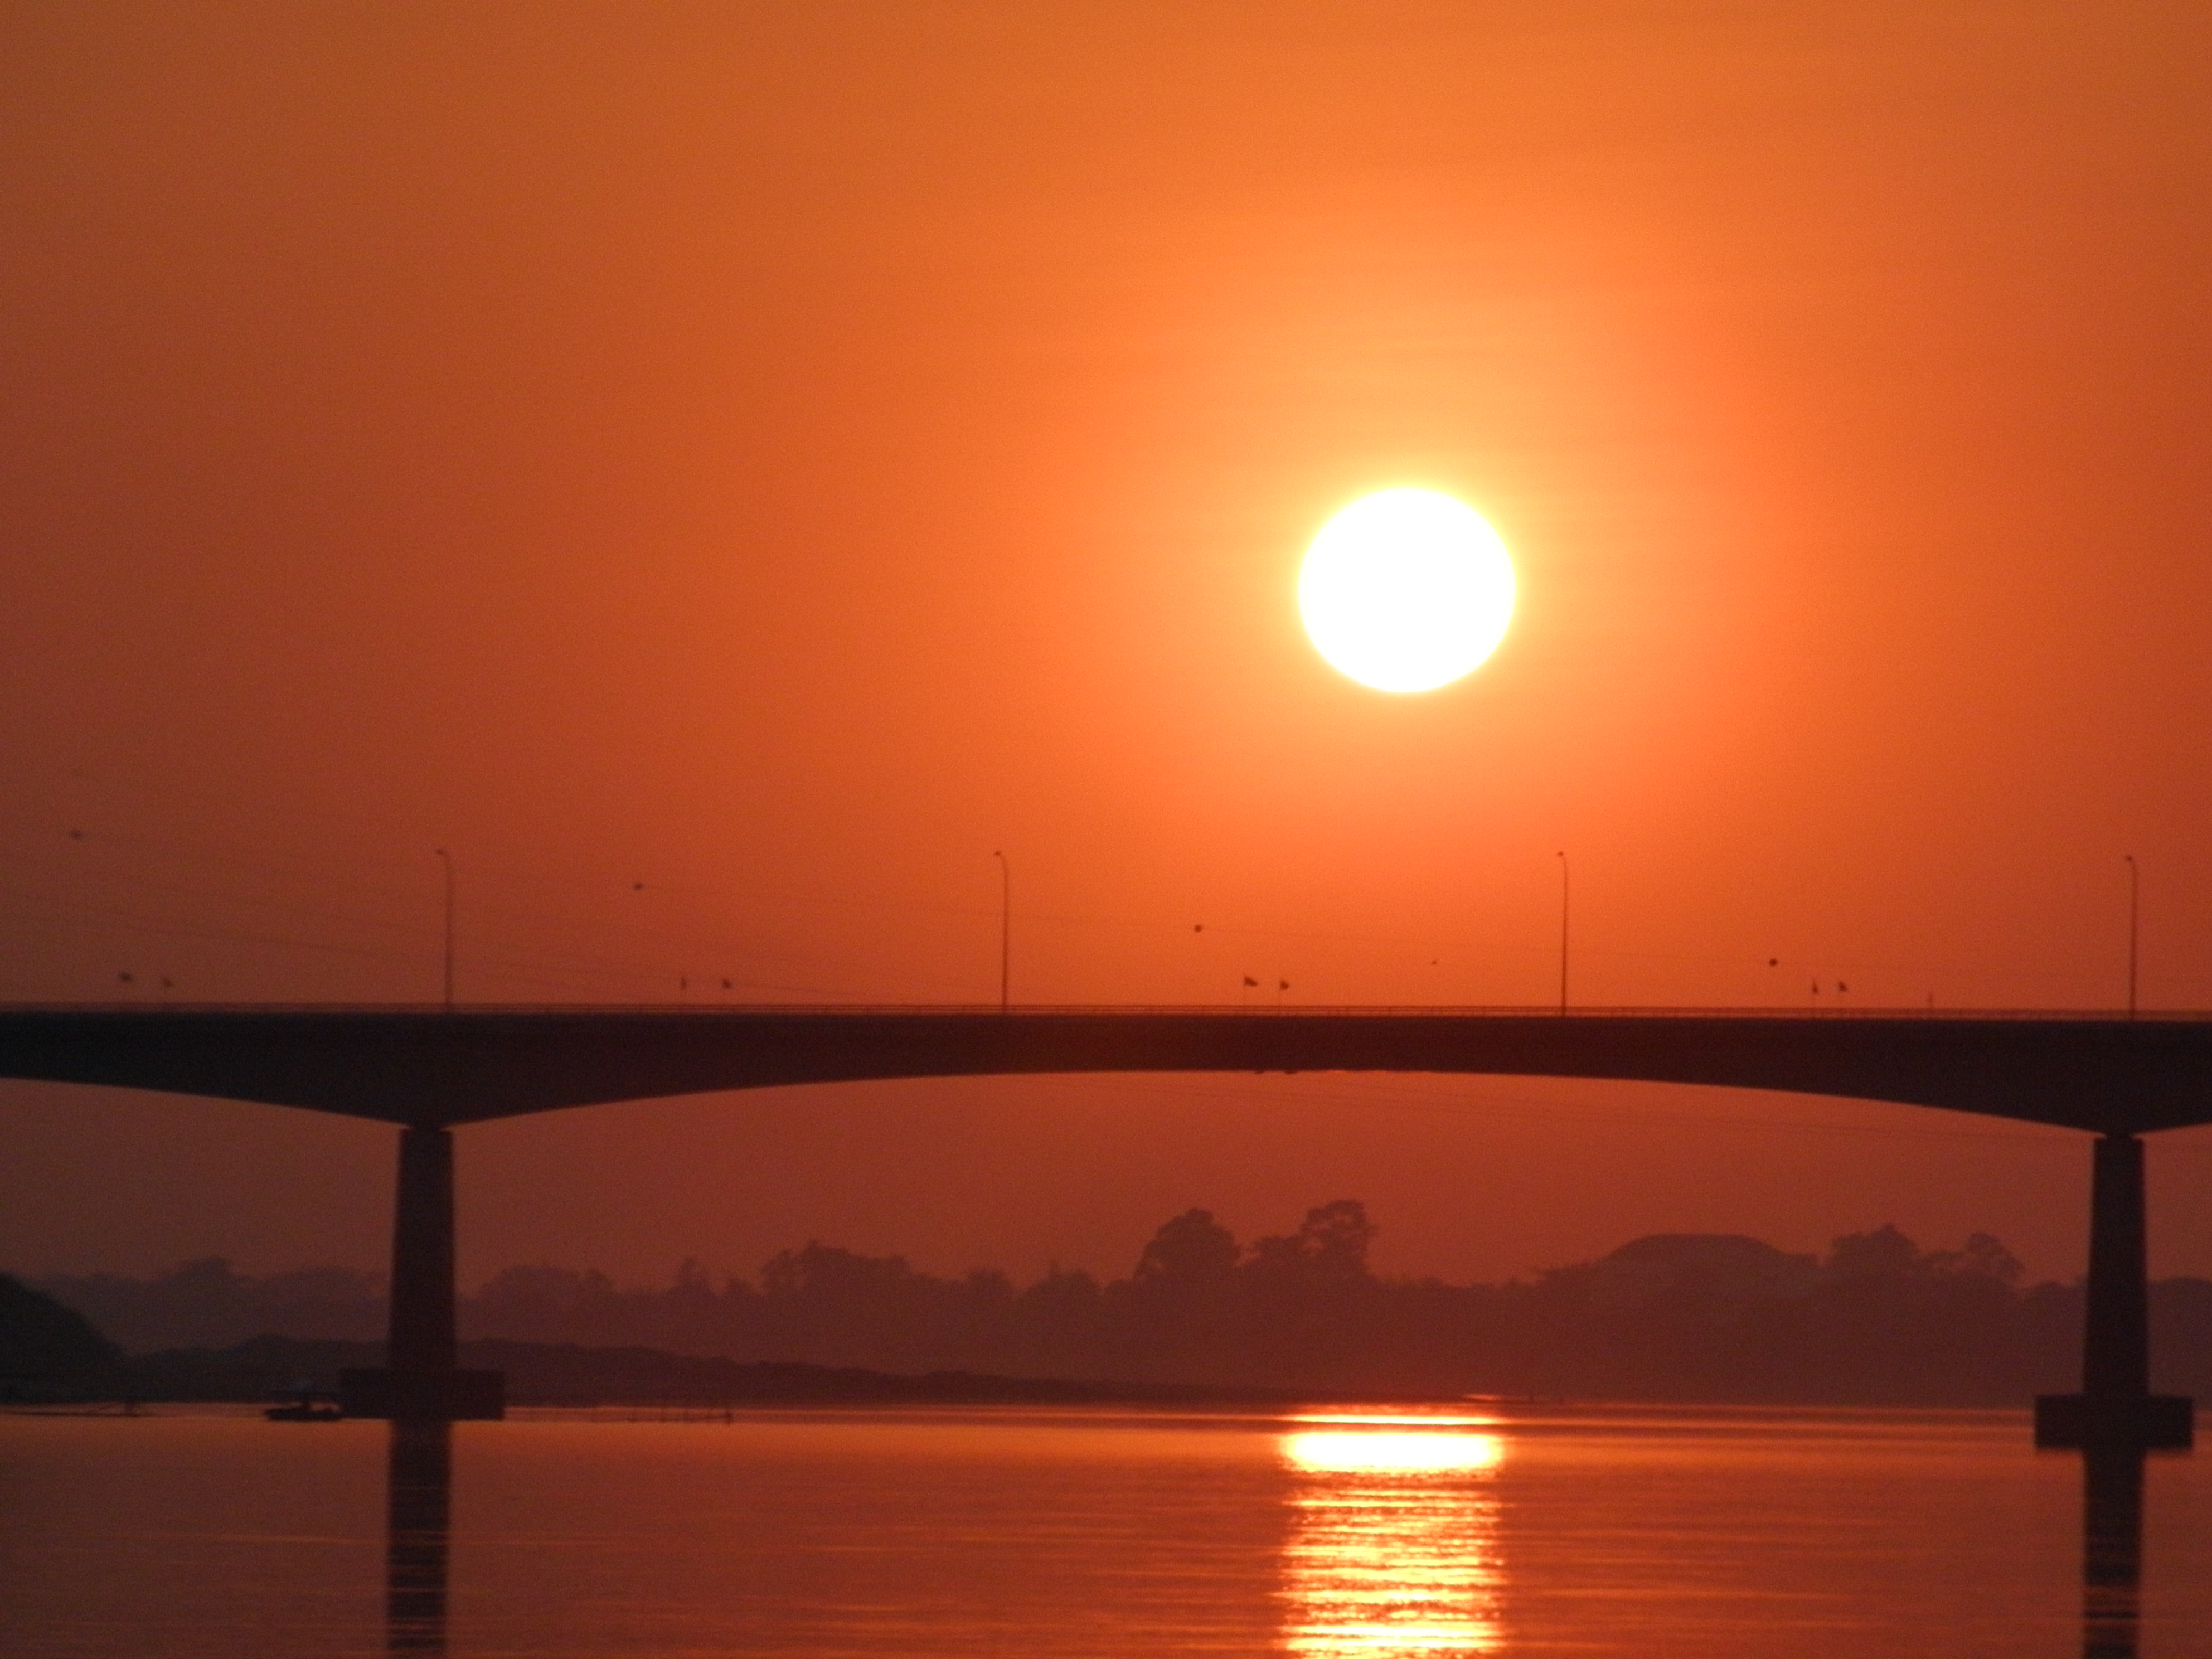 sunset in nong khai, thailand @ mekong river